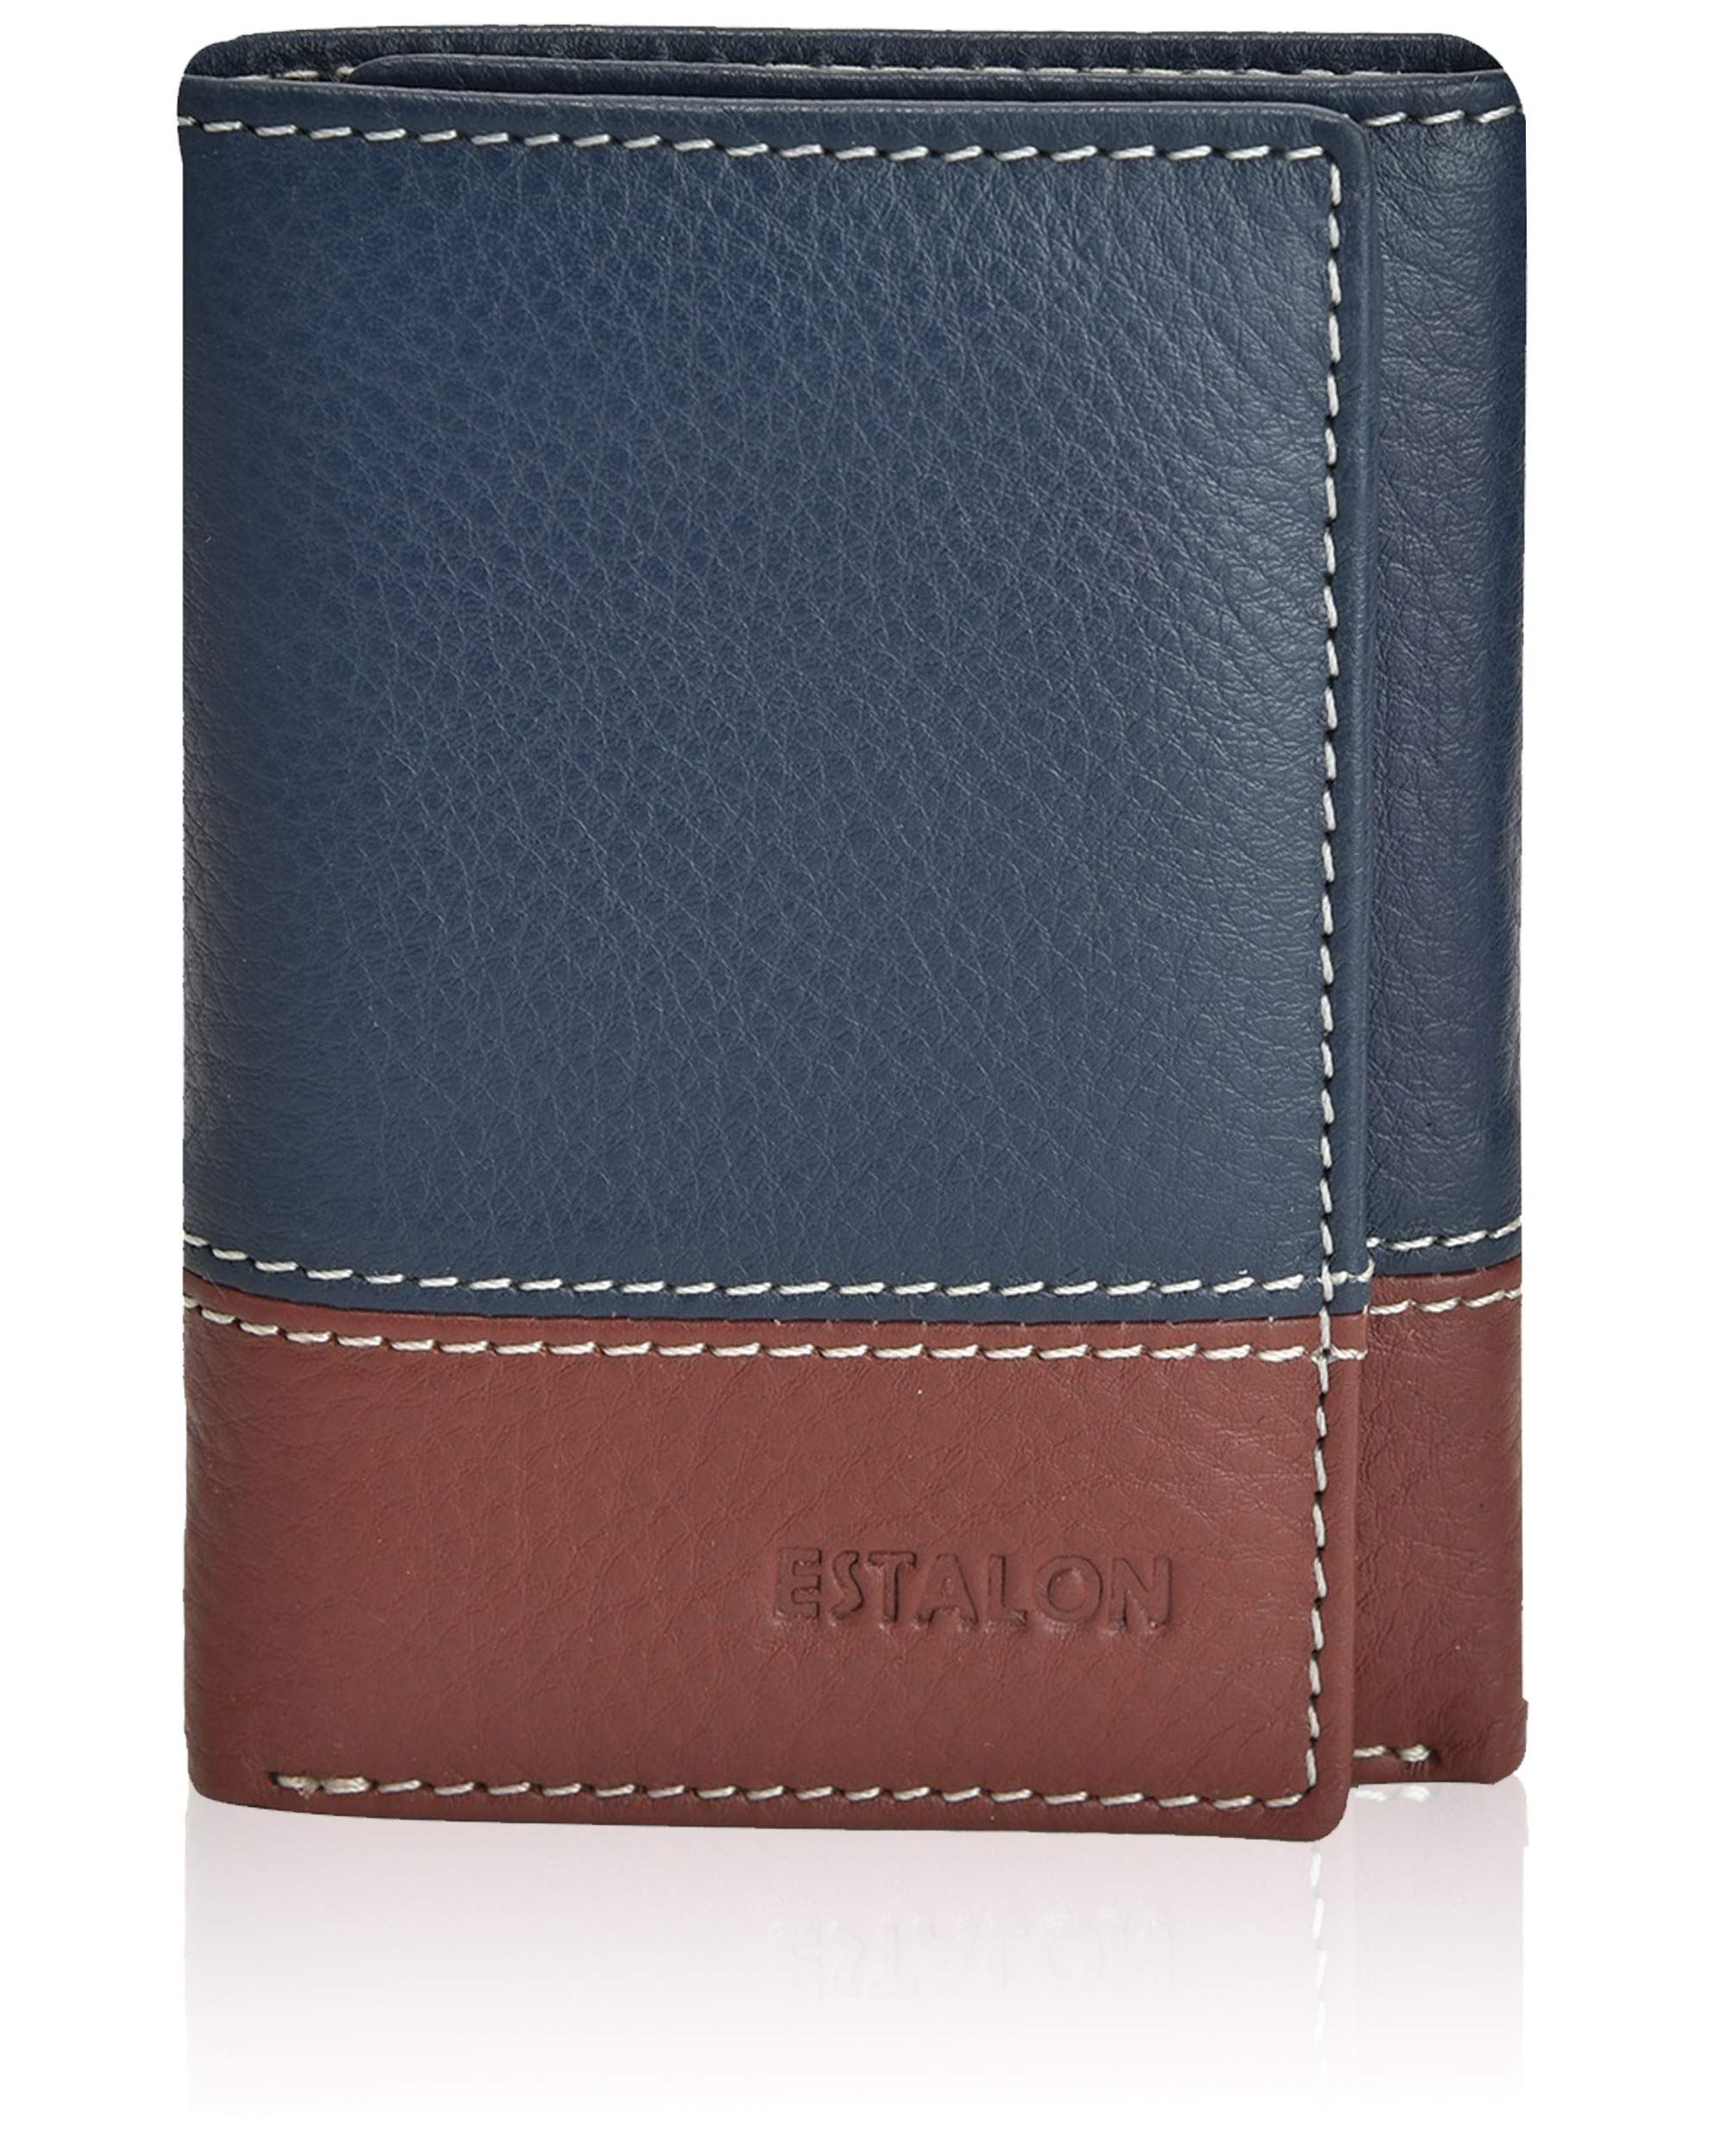 Credit Card Wallet Dual Color - Navy Brown Nappa Genuine Leather Durable Trifold Men's Wallet, RFID Blocking Prevents Identity Theft, Elegant Gift Box Packing by ESTALON